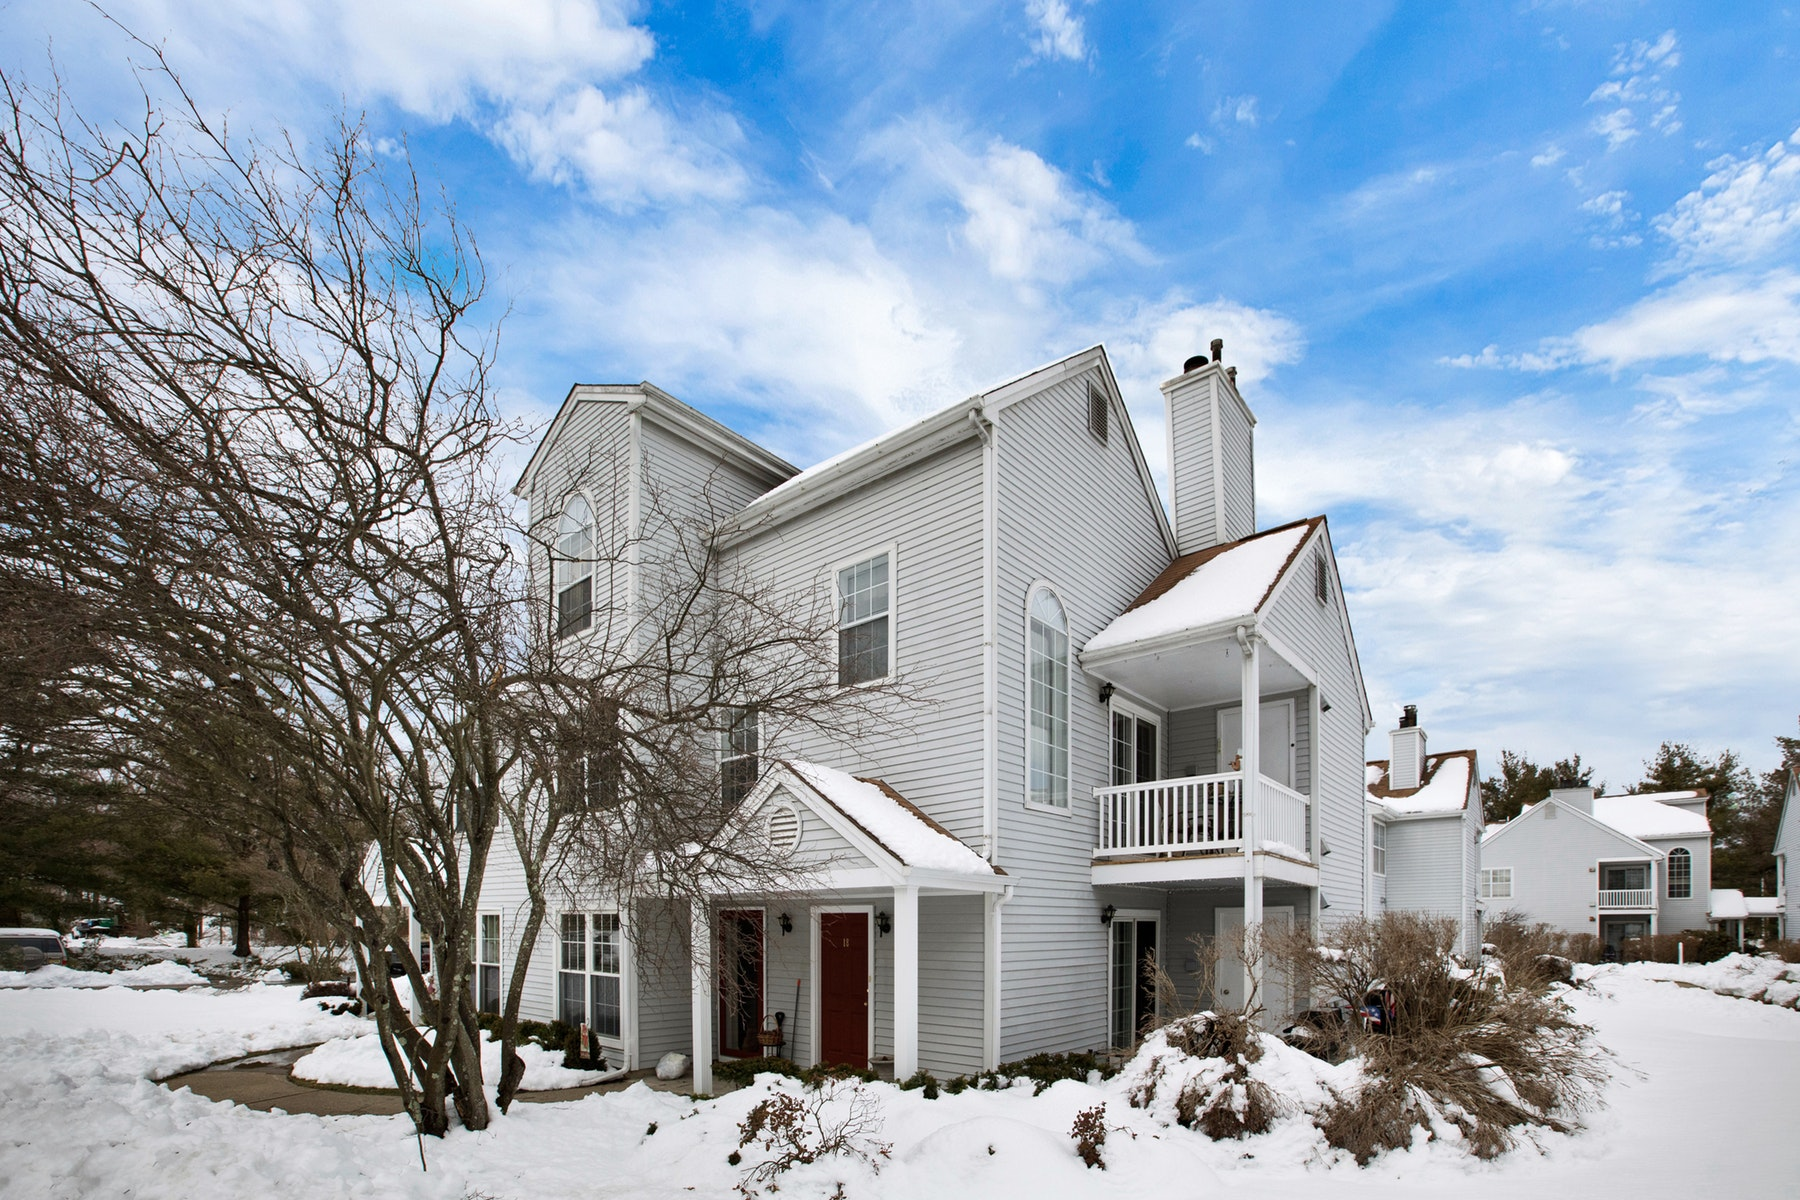 Townhouse for Sale at Hilltop Farm Townhome 18 Homestead Lane Lincoln Park, New Jersey 07035 United States